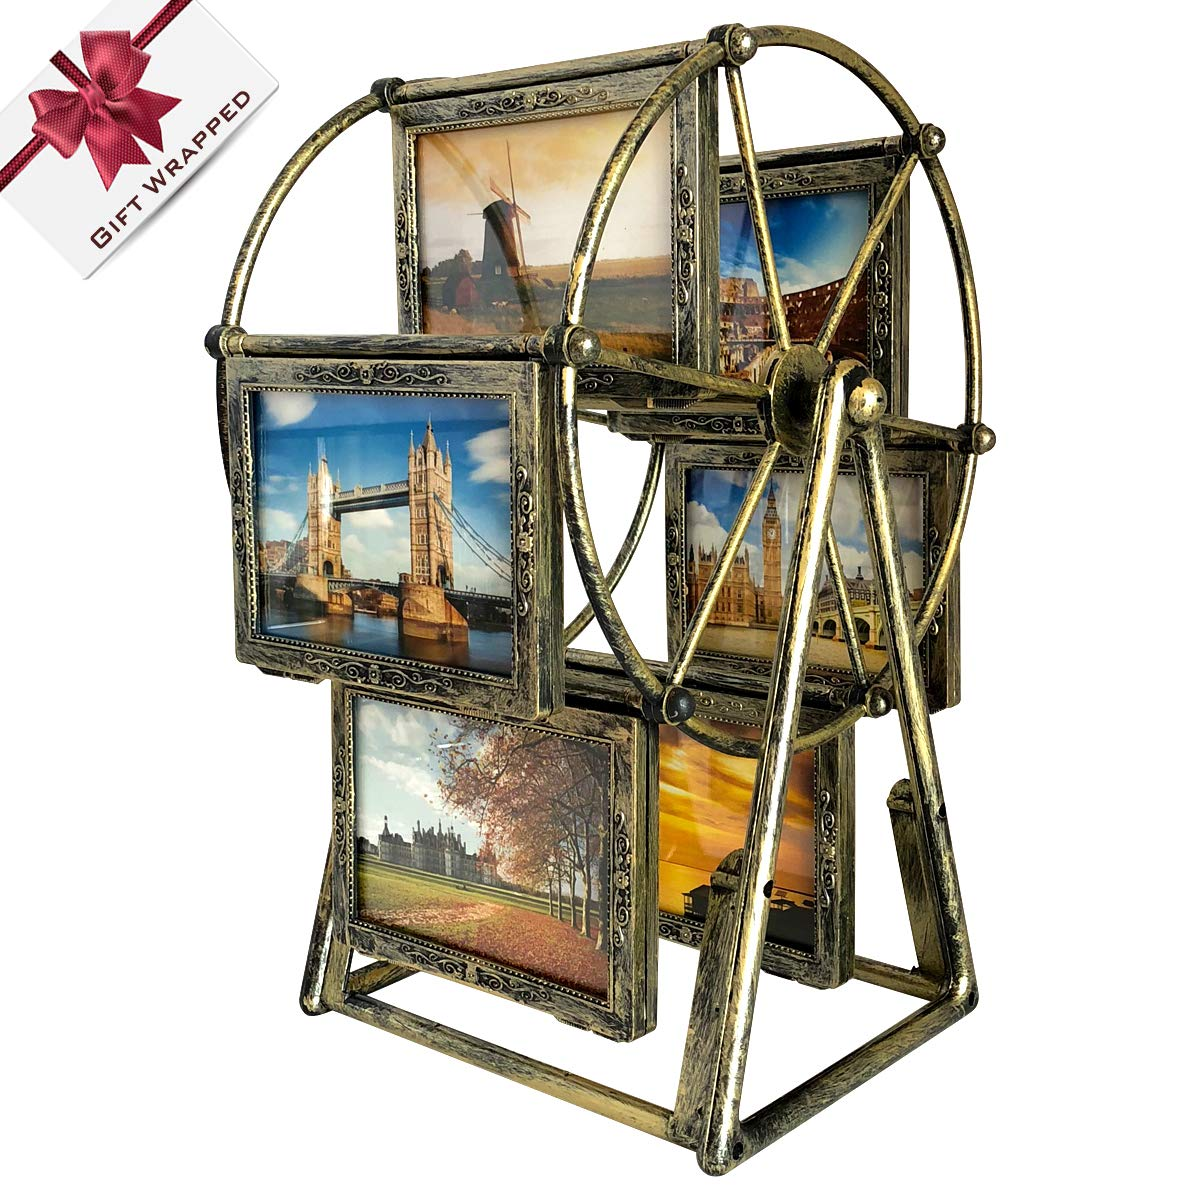 Vintage Rotating Ferris Wheel Photo Frame, 12 Photos Shows For 3.5x5in Photographs, Multiple Picture Frames With Glass Front, Fit for Stands Vertically on Desk Table Top (Bronze) XBEEK